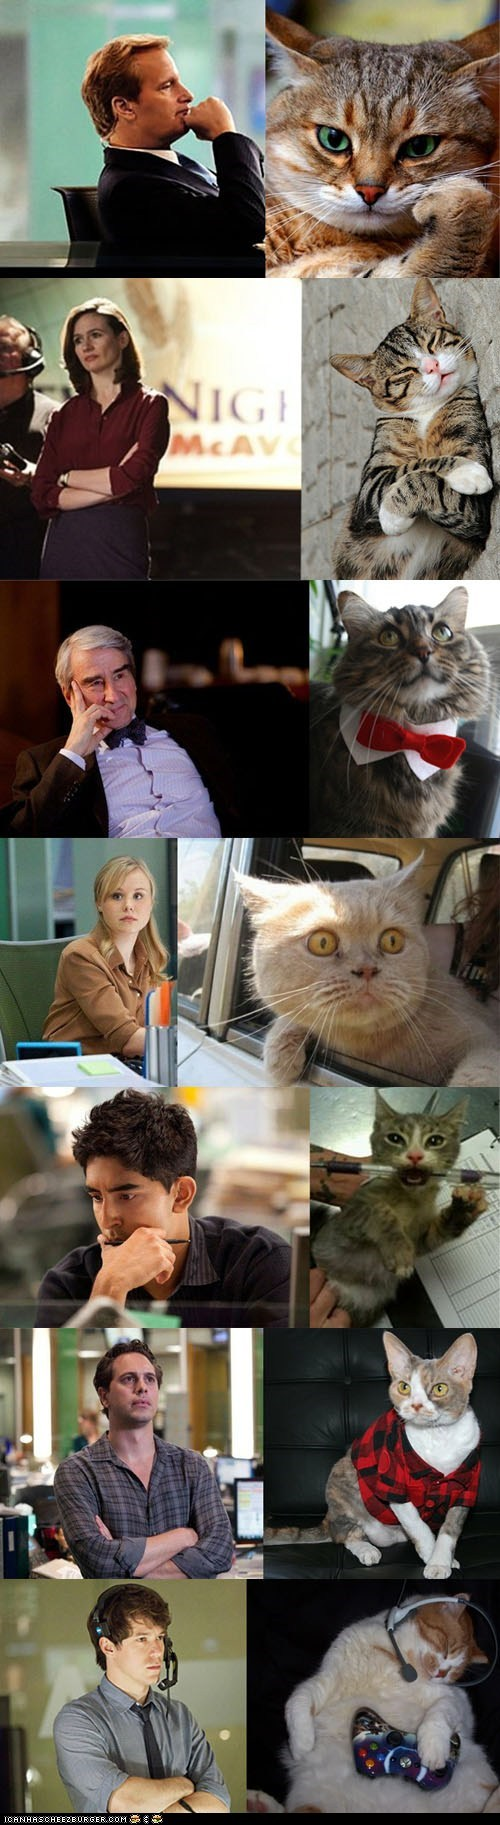 aaron sorkin Cats hbo look alikes newsroom the newsroom TV - 6372562944